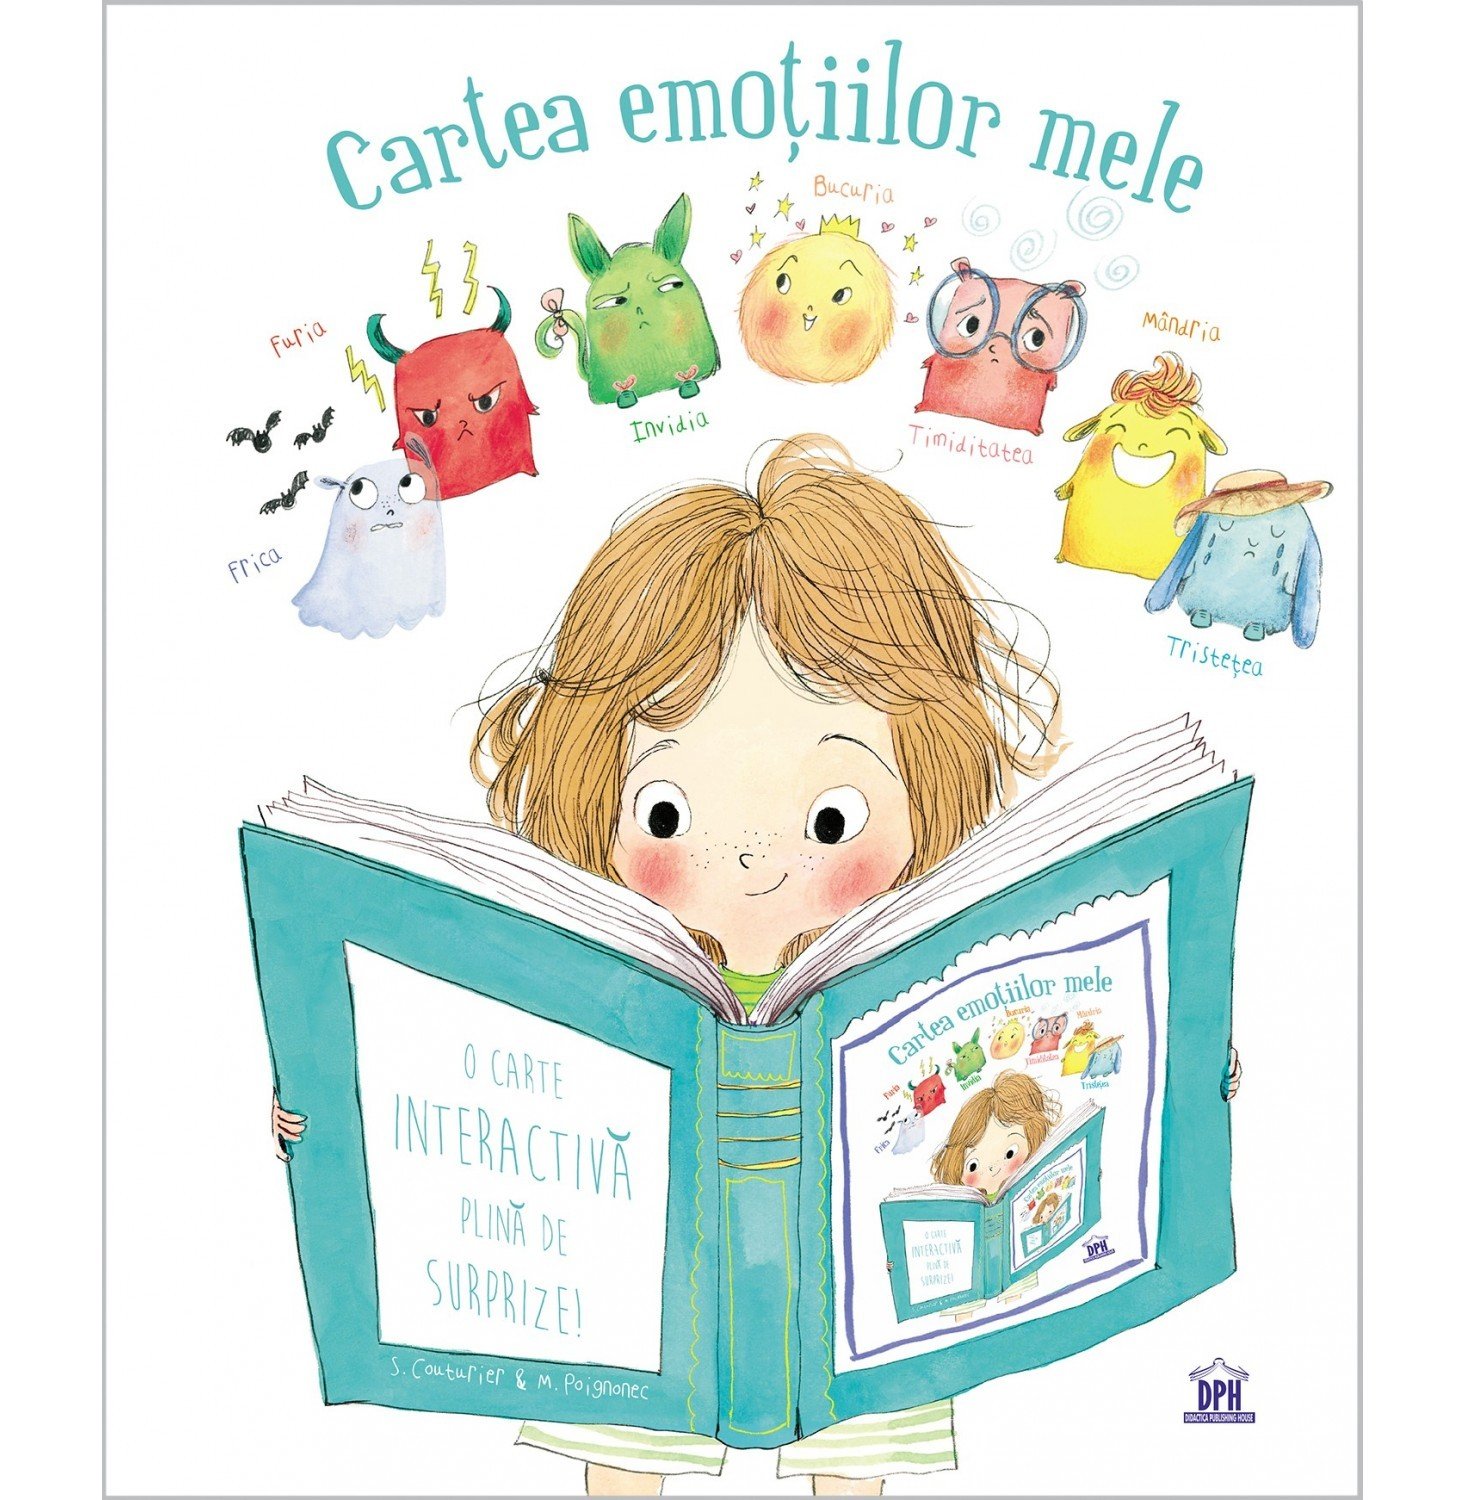 Cartea emotiilor mele - Stephanie Couturier - Maureen Poignonec  - carte copii - editura DPH